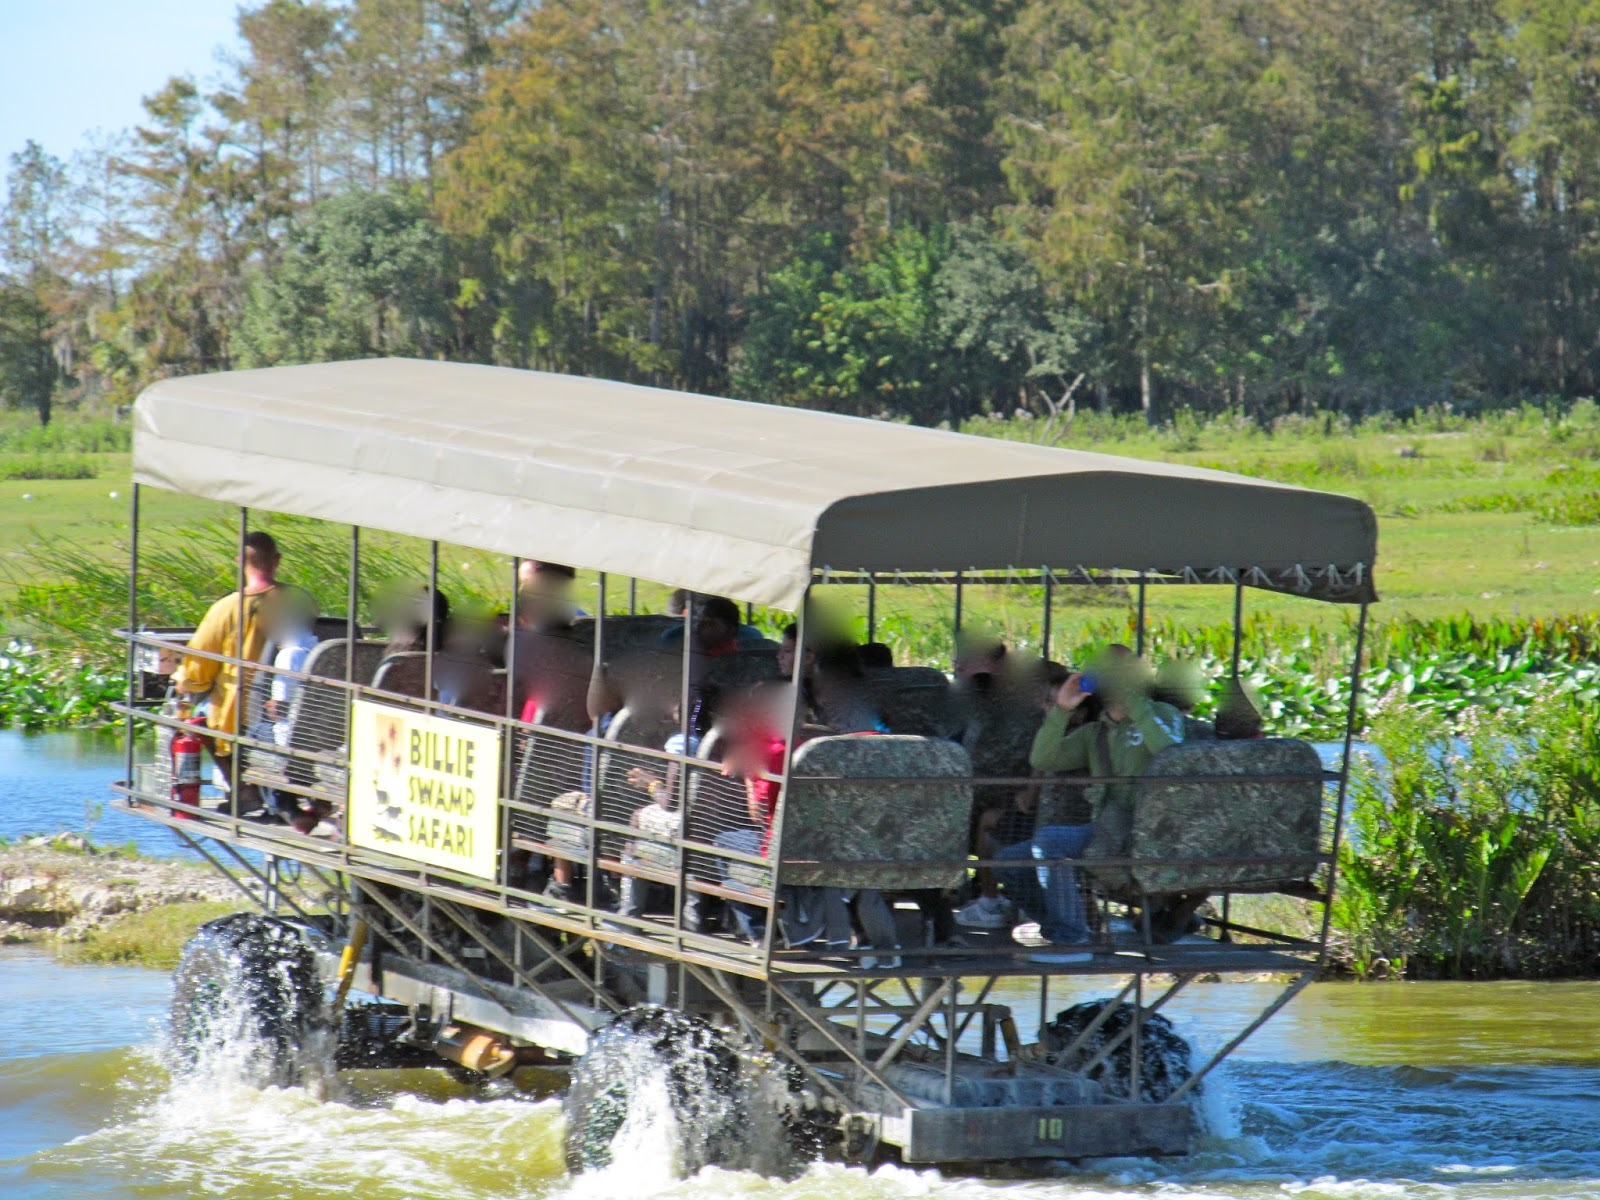 Swamp Buggy Tour at Billi's Swamp Safari